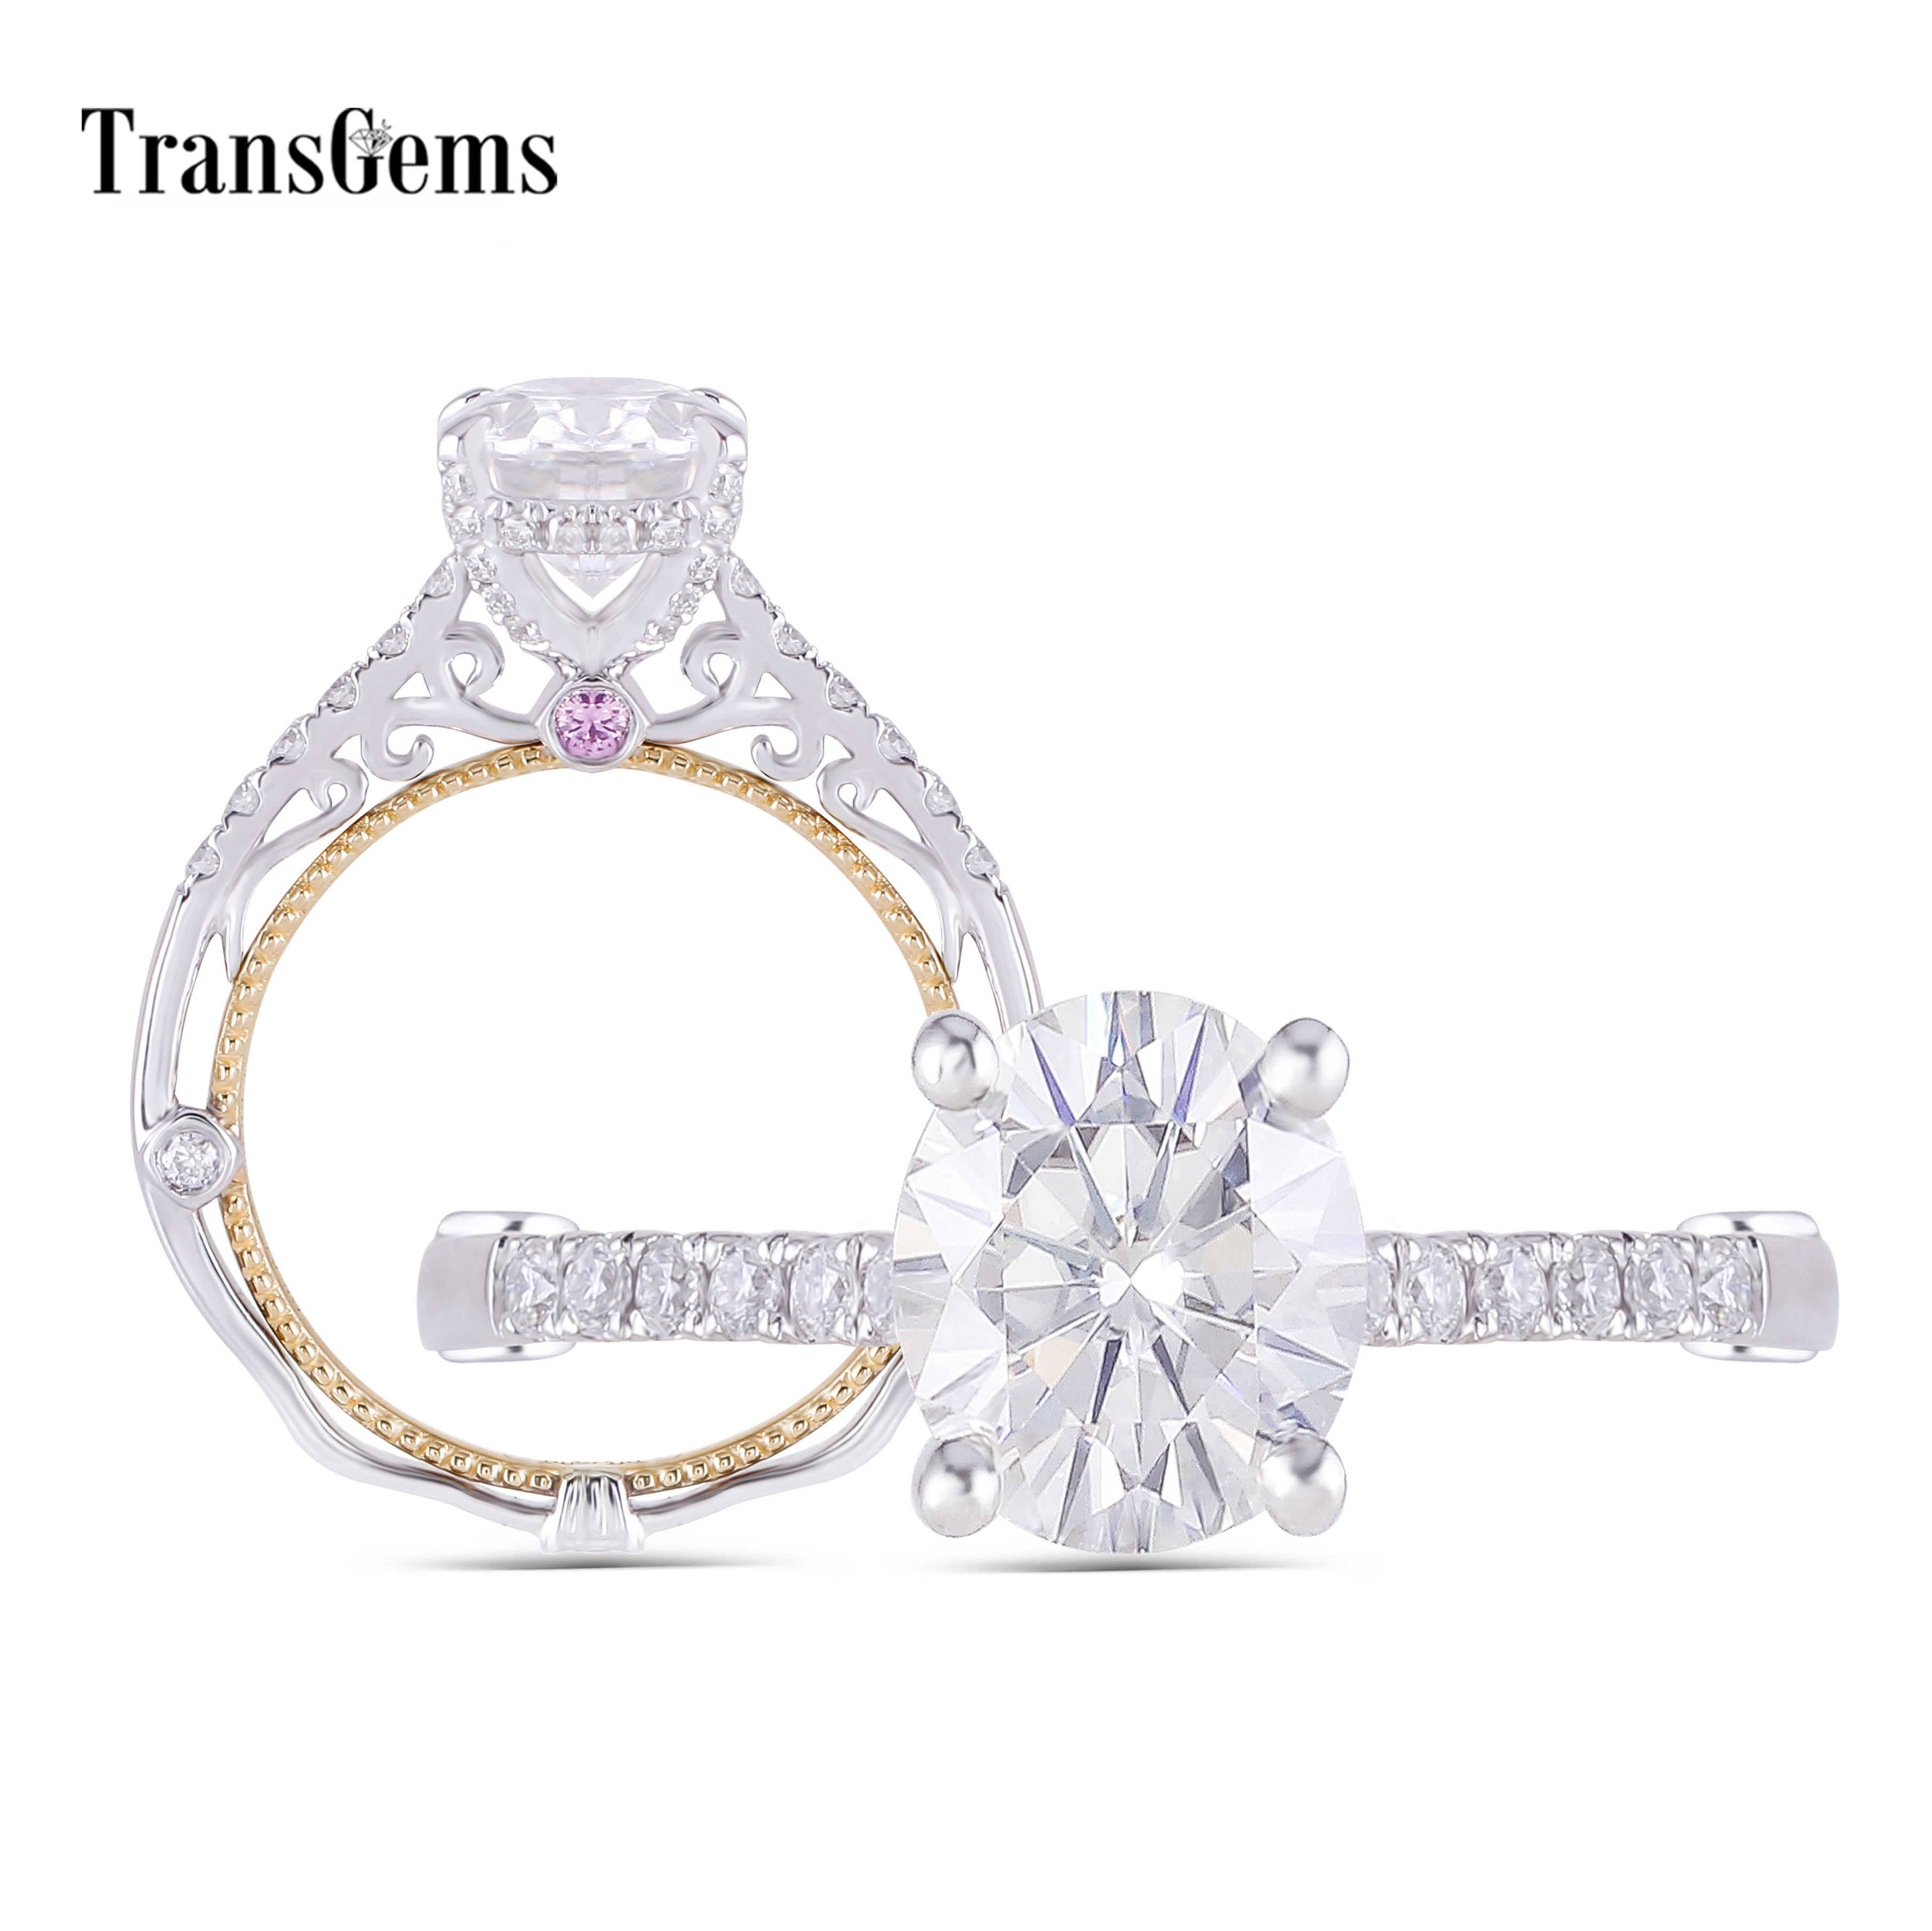 Transgems 14K White and Yellow Gold Center 2ct Oval F Color